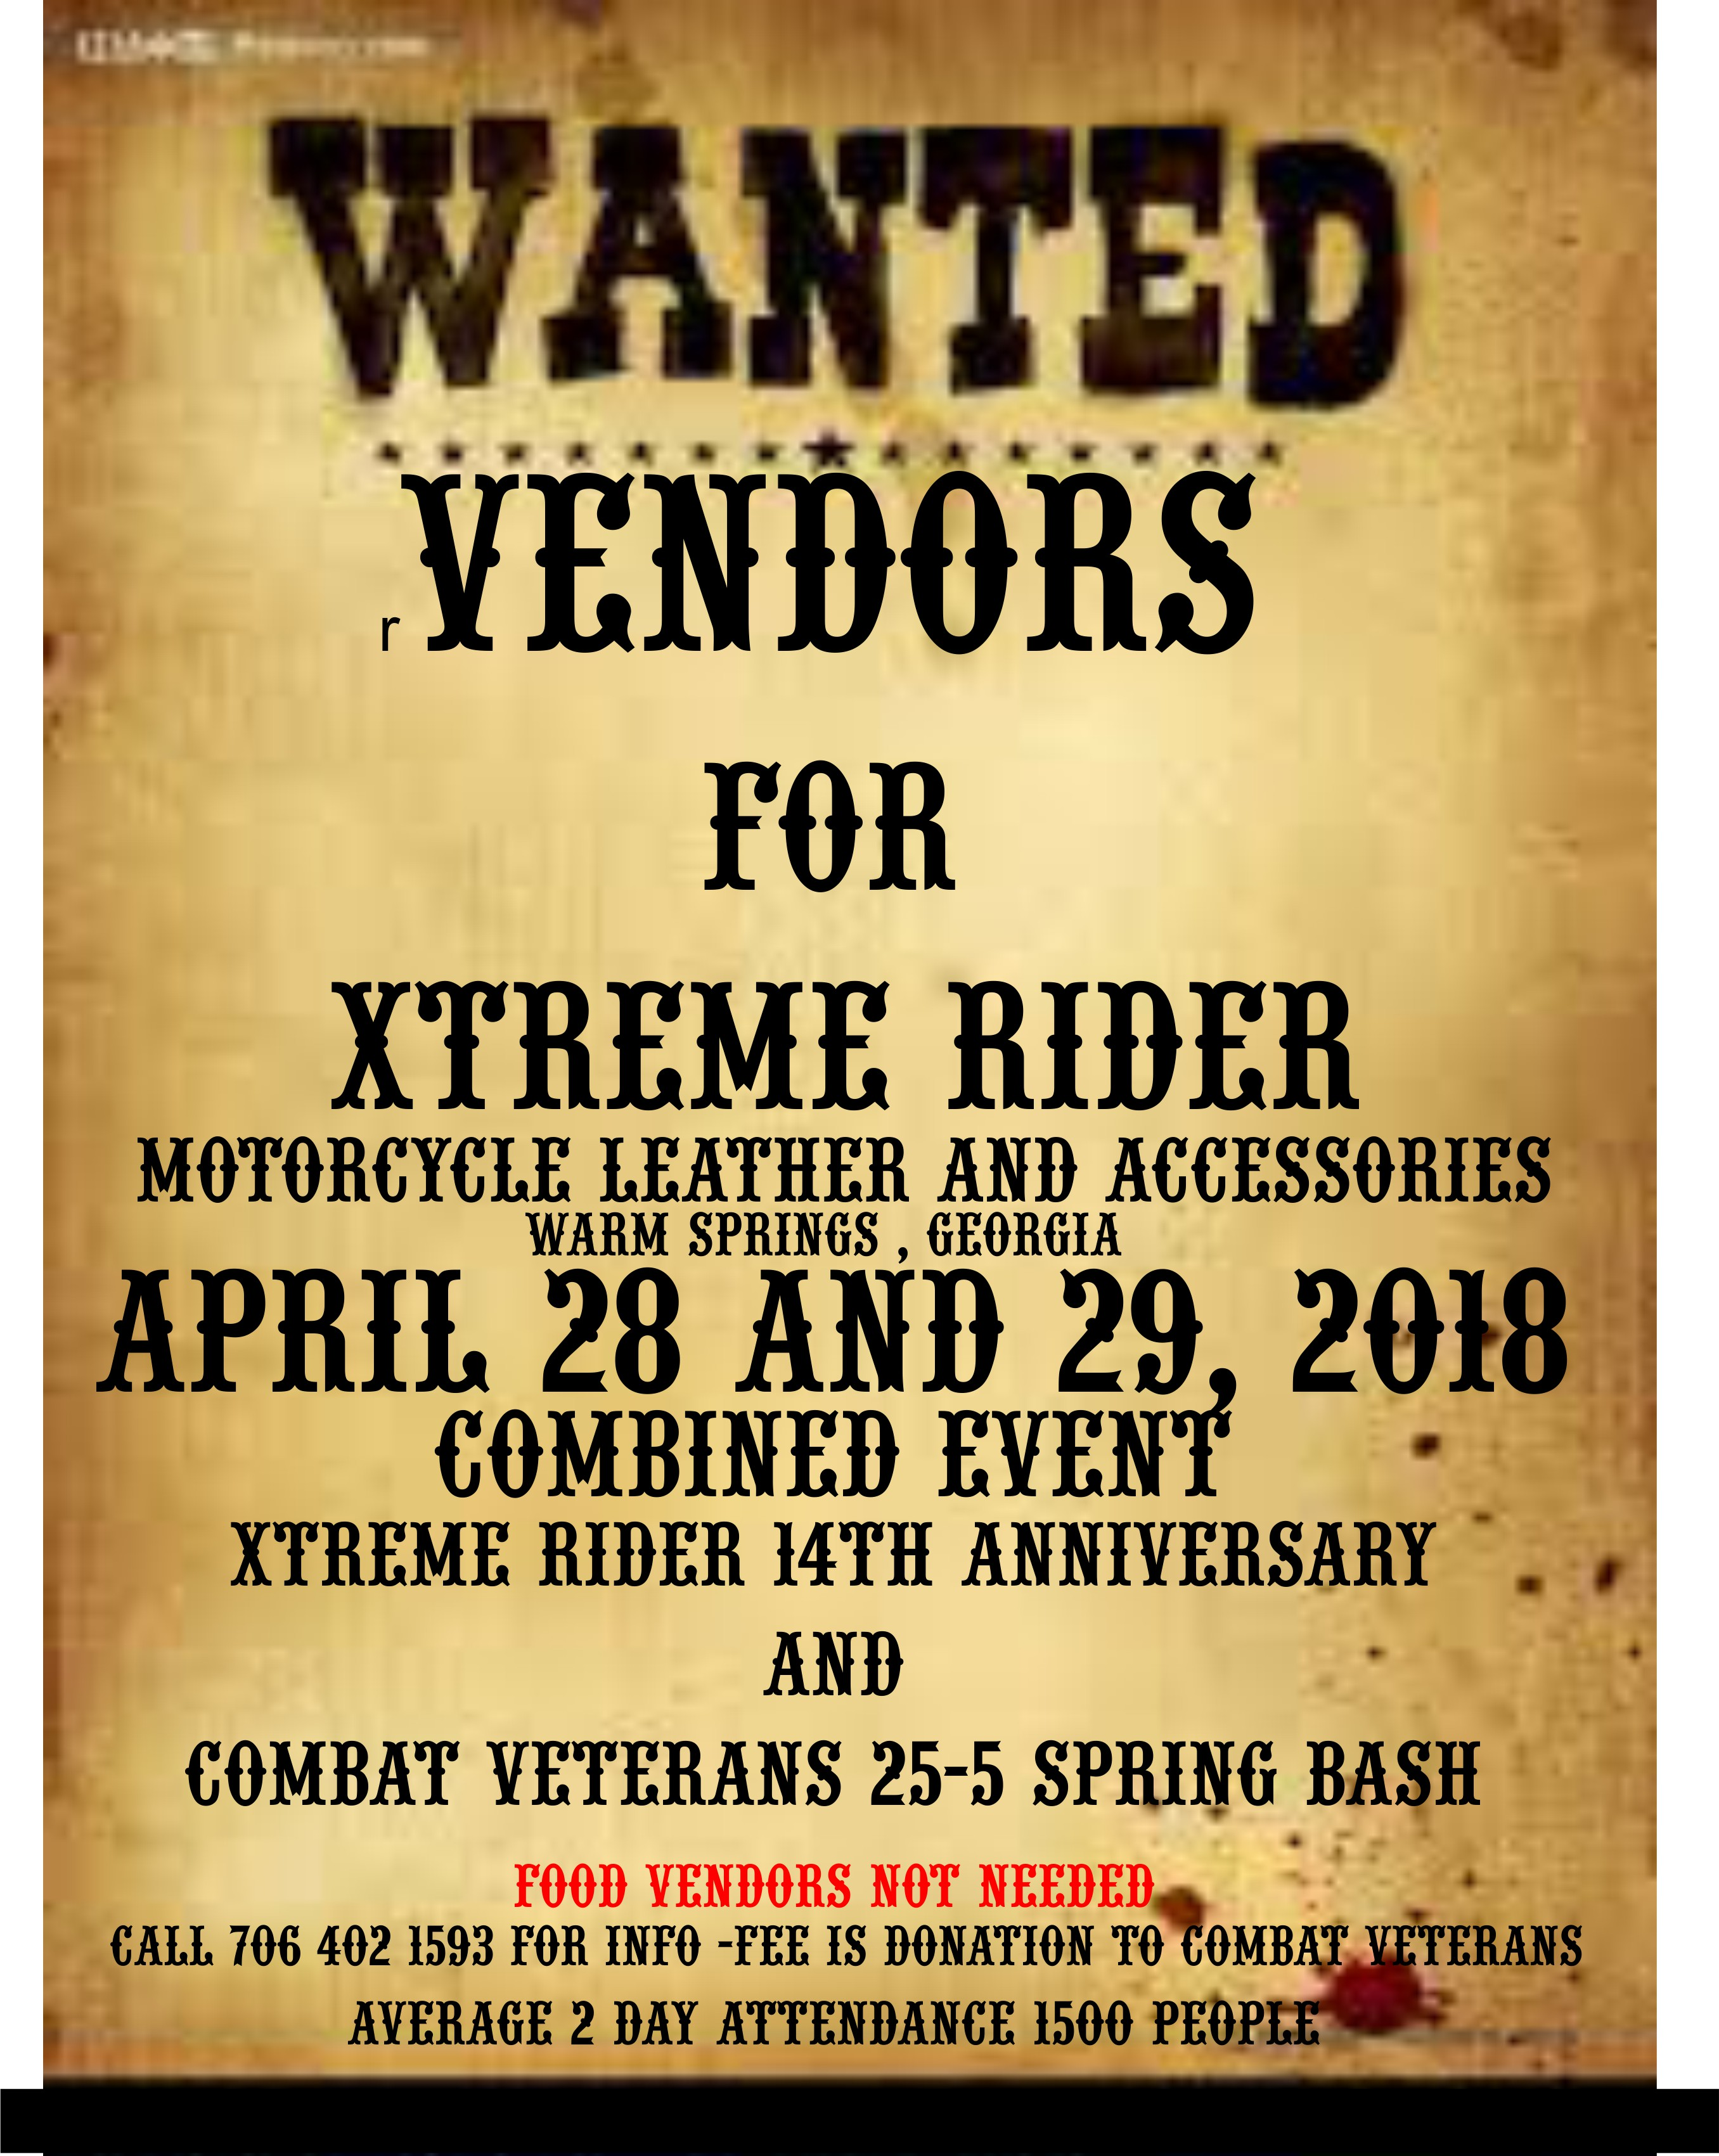 Wanted Vendors